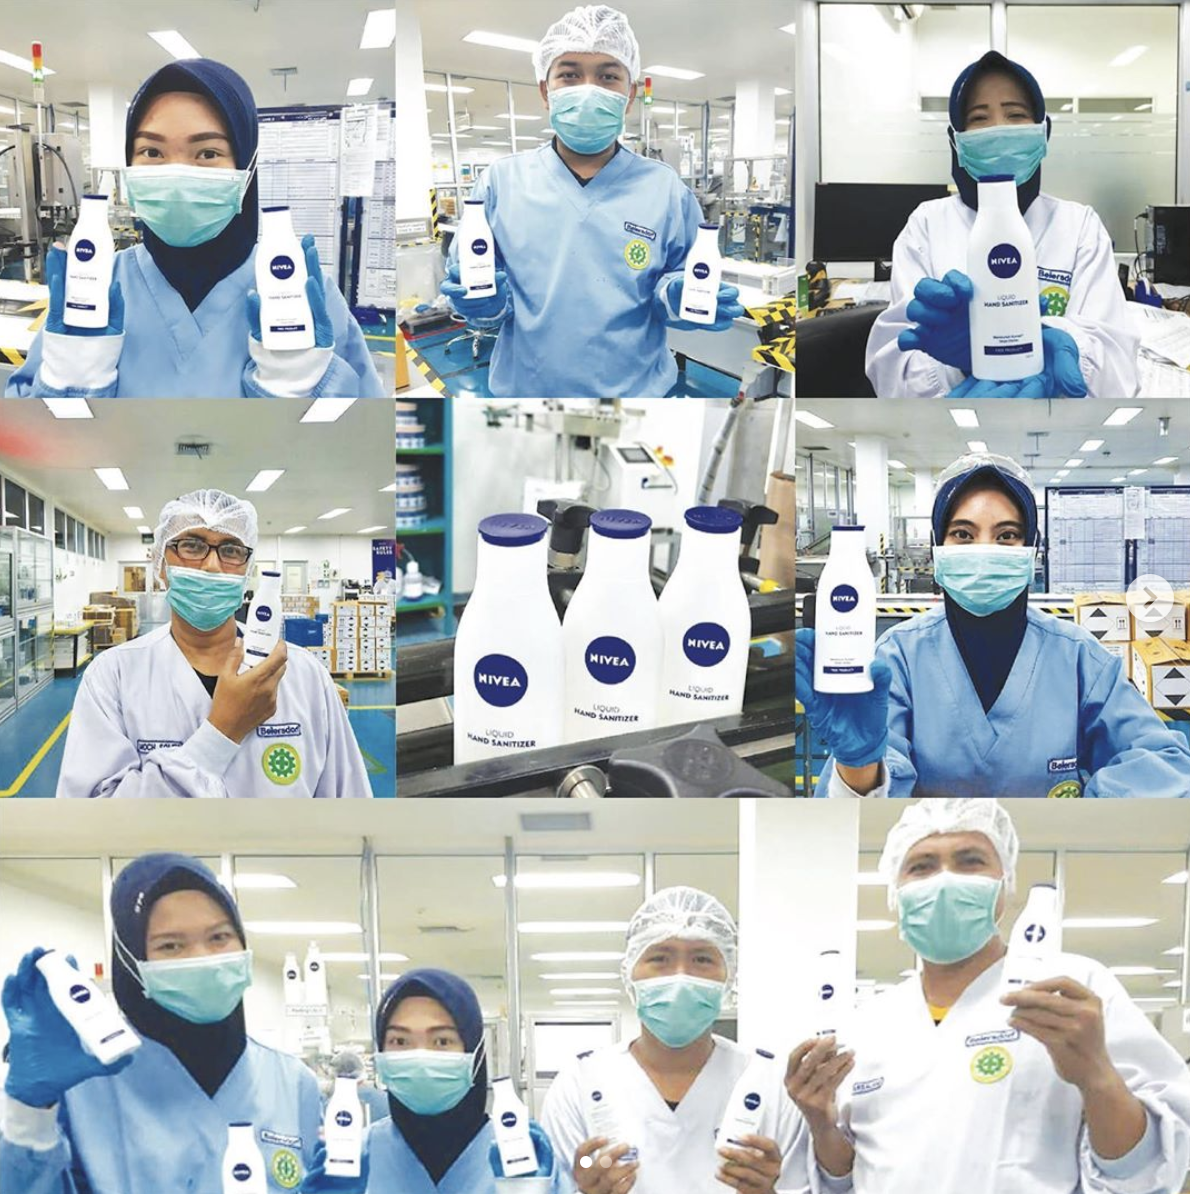 NIVEA Indonesia Hand Sanitizer Behind-The-Scenes Production (Source: IG @nivea_id, 31 March 2020)